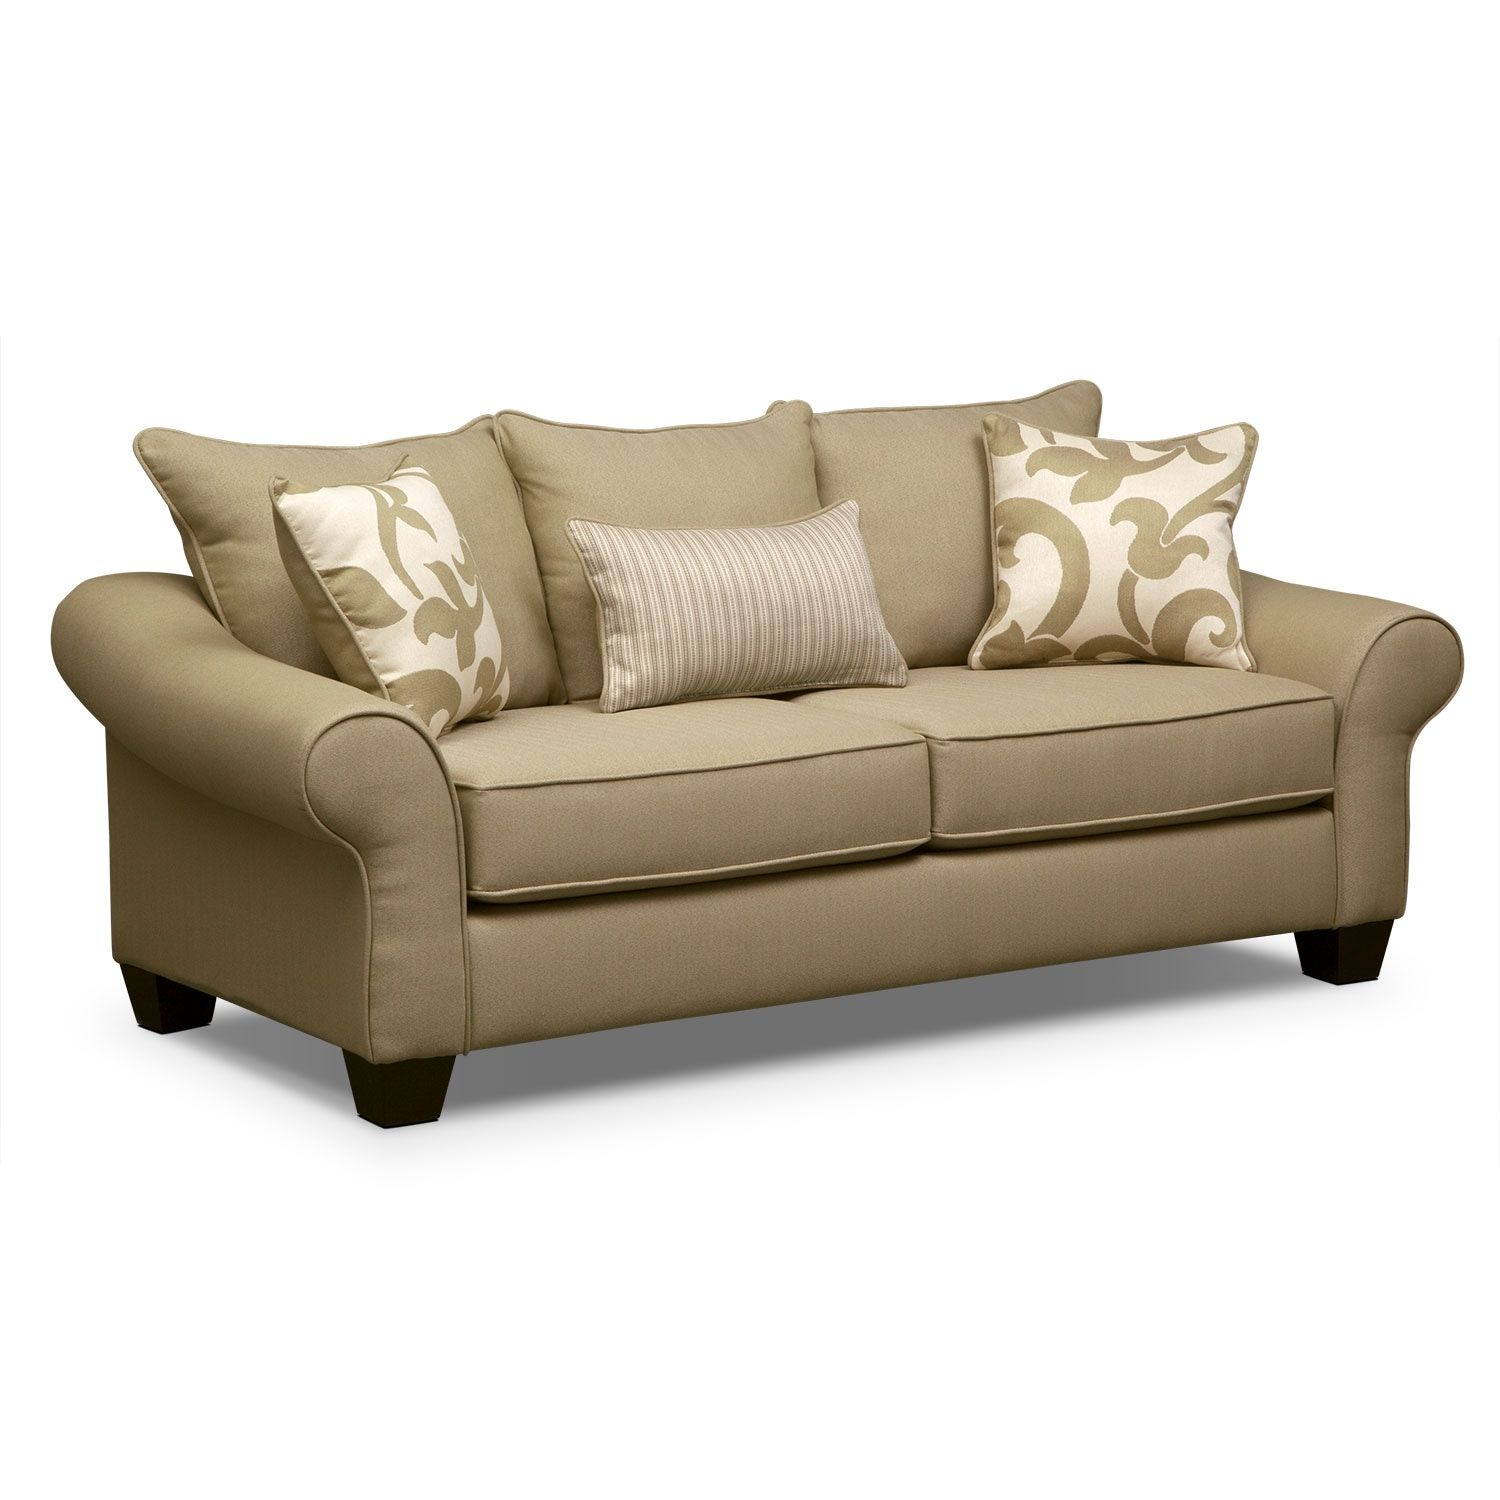 Living Rooms Bedrooms Dining Reclining Furniture Mattresses Accessories Sectionals Sofas And Couches At Low Prices Visit A Vcf Near You